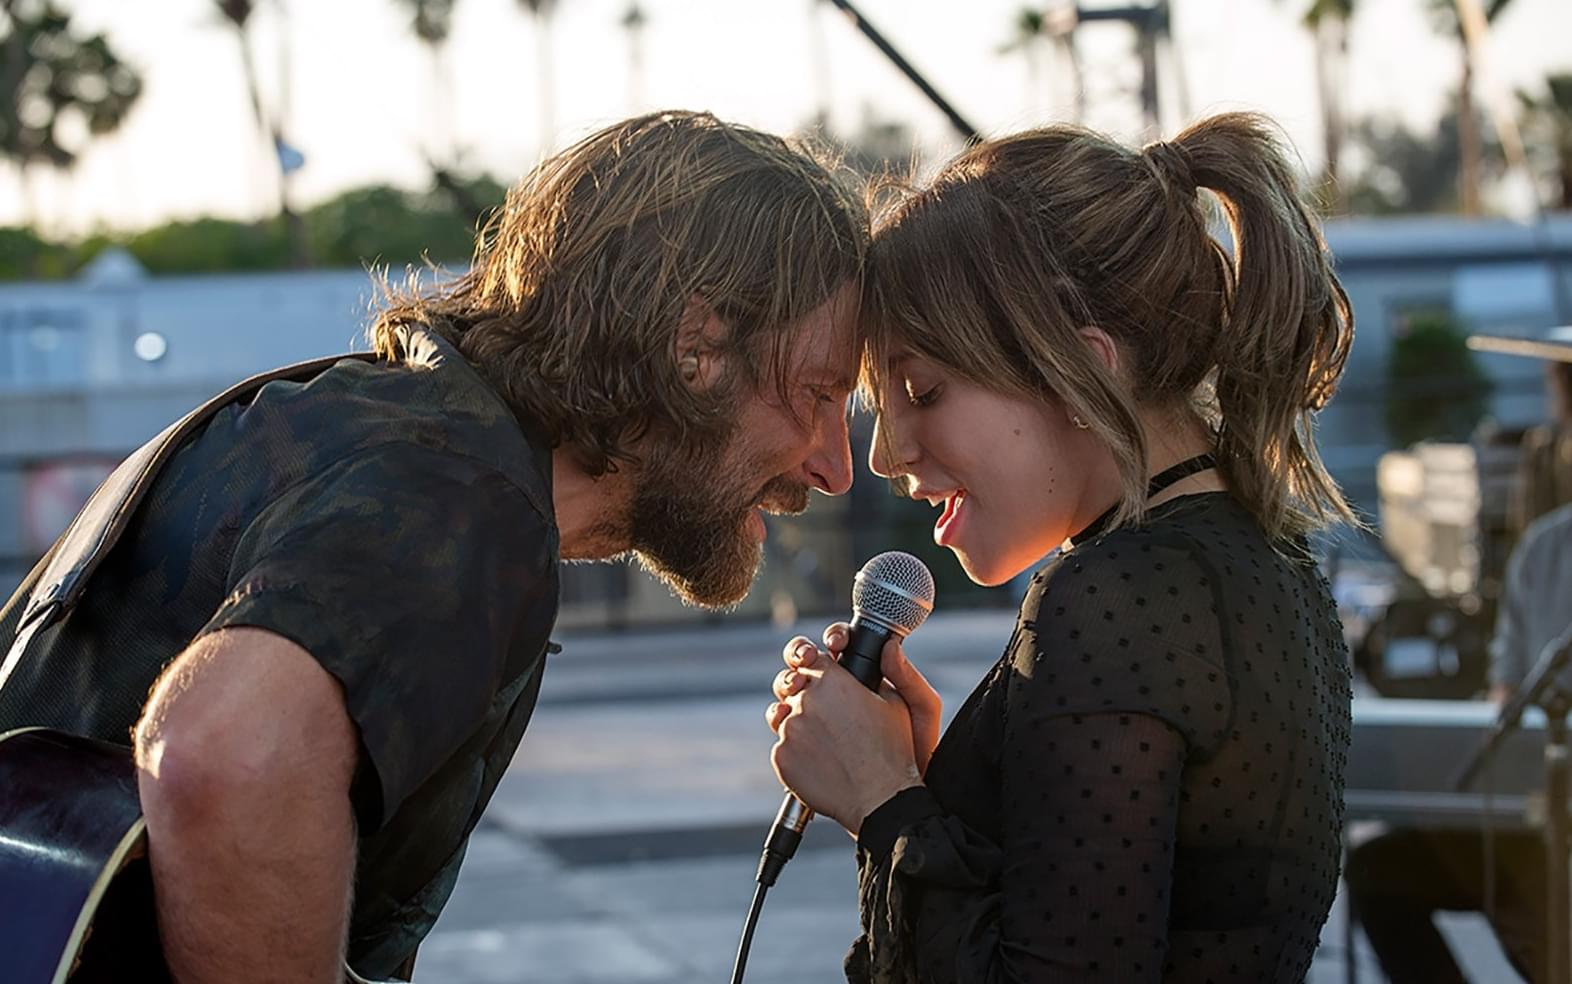 LADY GAGA STEPS INTO THE SPOTLIGHT IN THE 'A STAR IS BORN' TRAILER